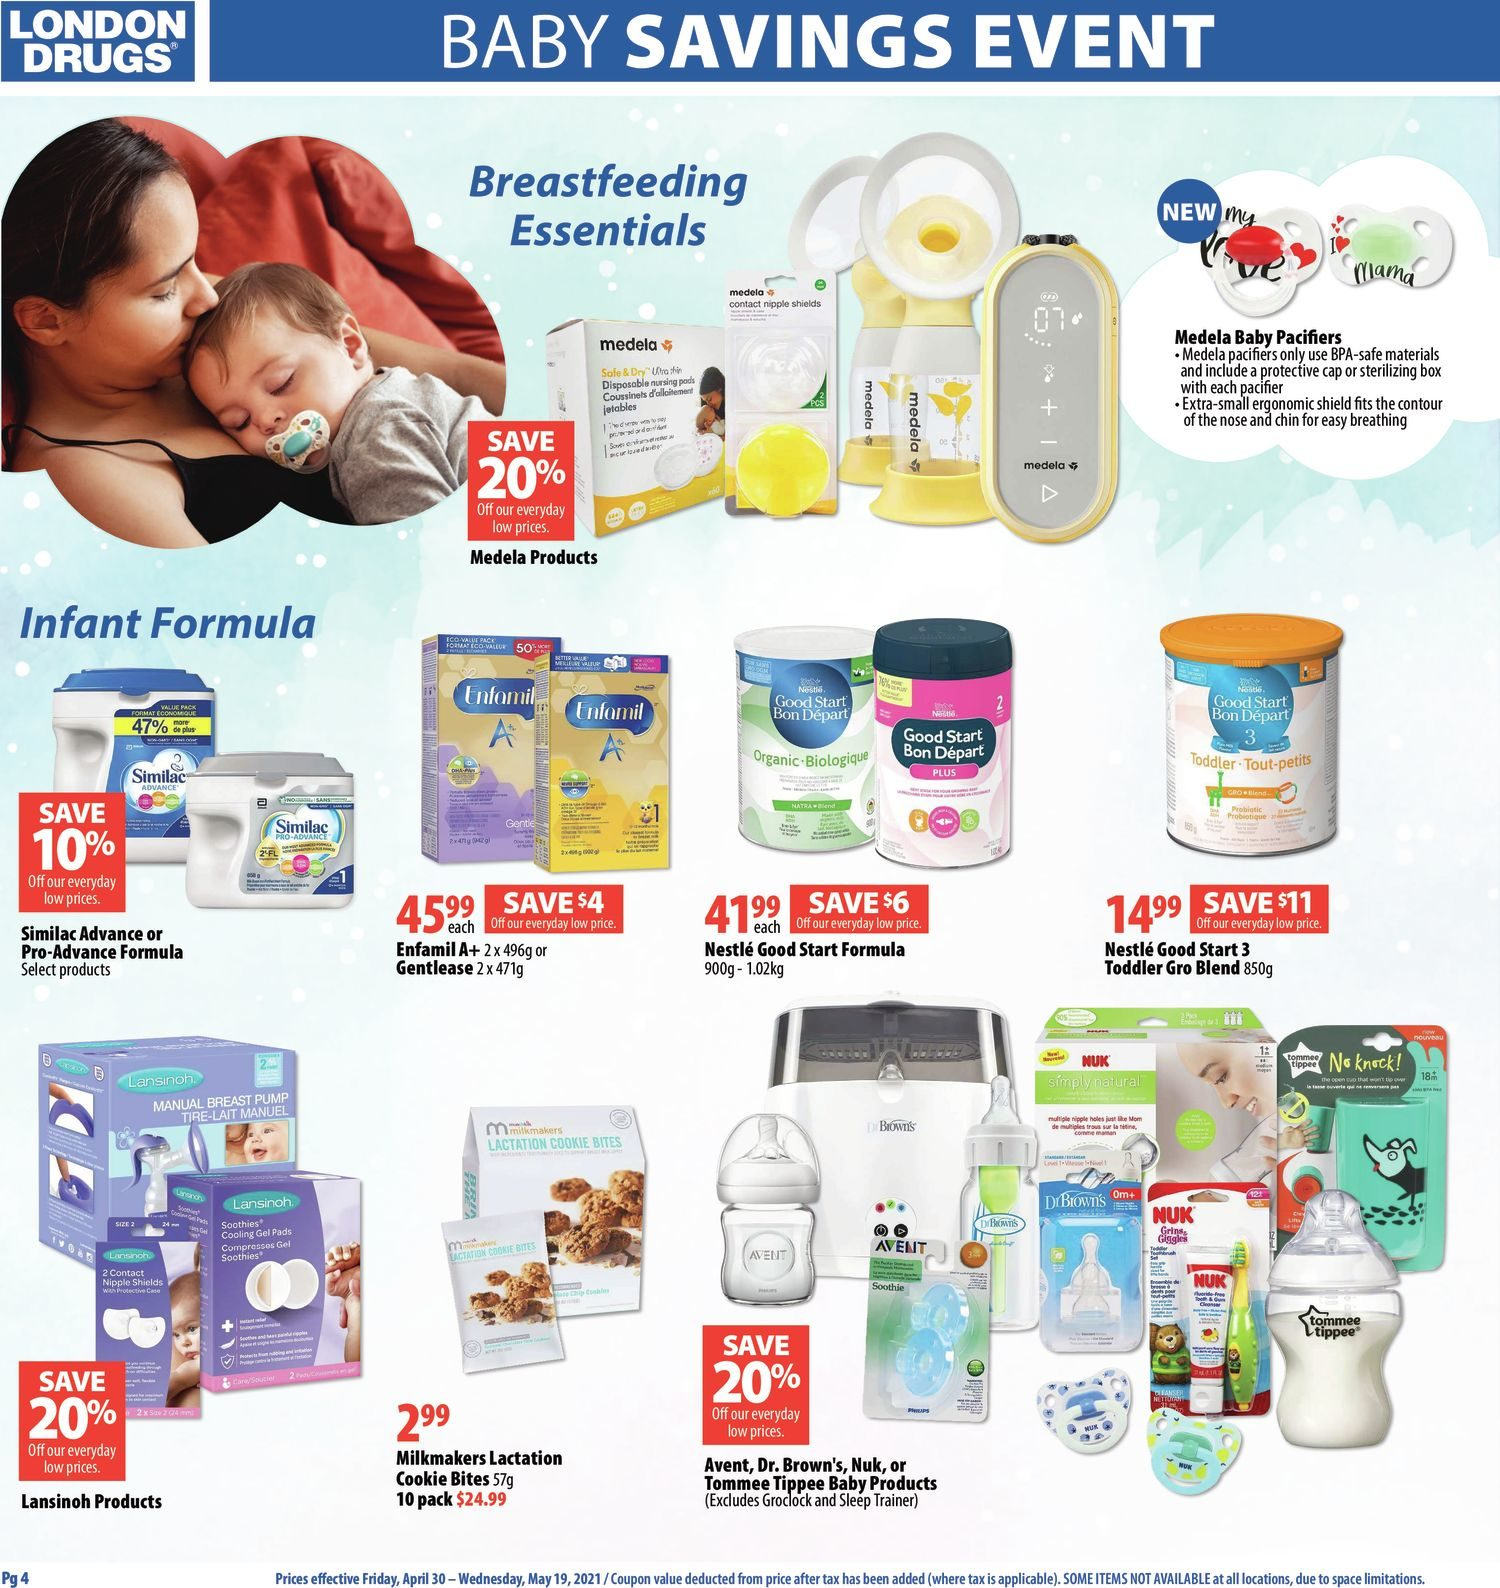 London Drugs - Baby Savings Event - Page 4